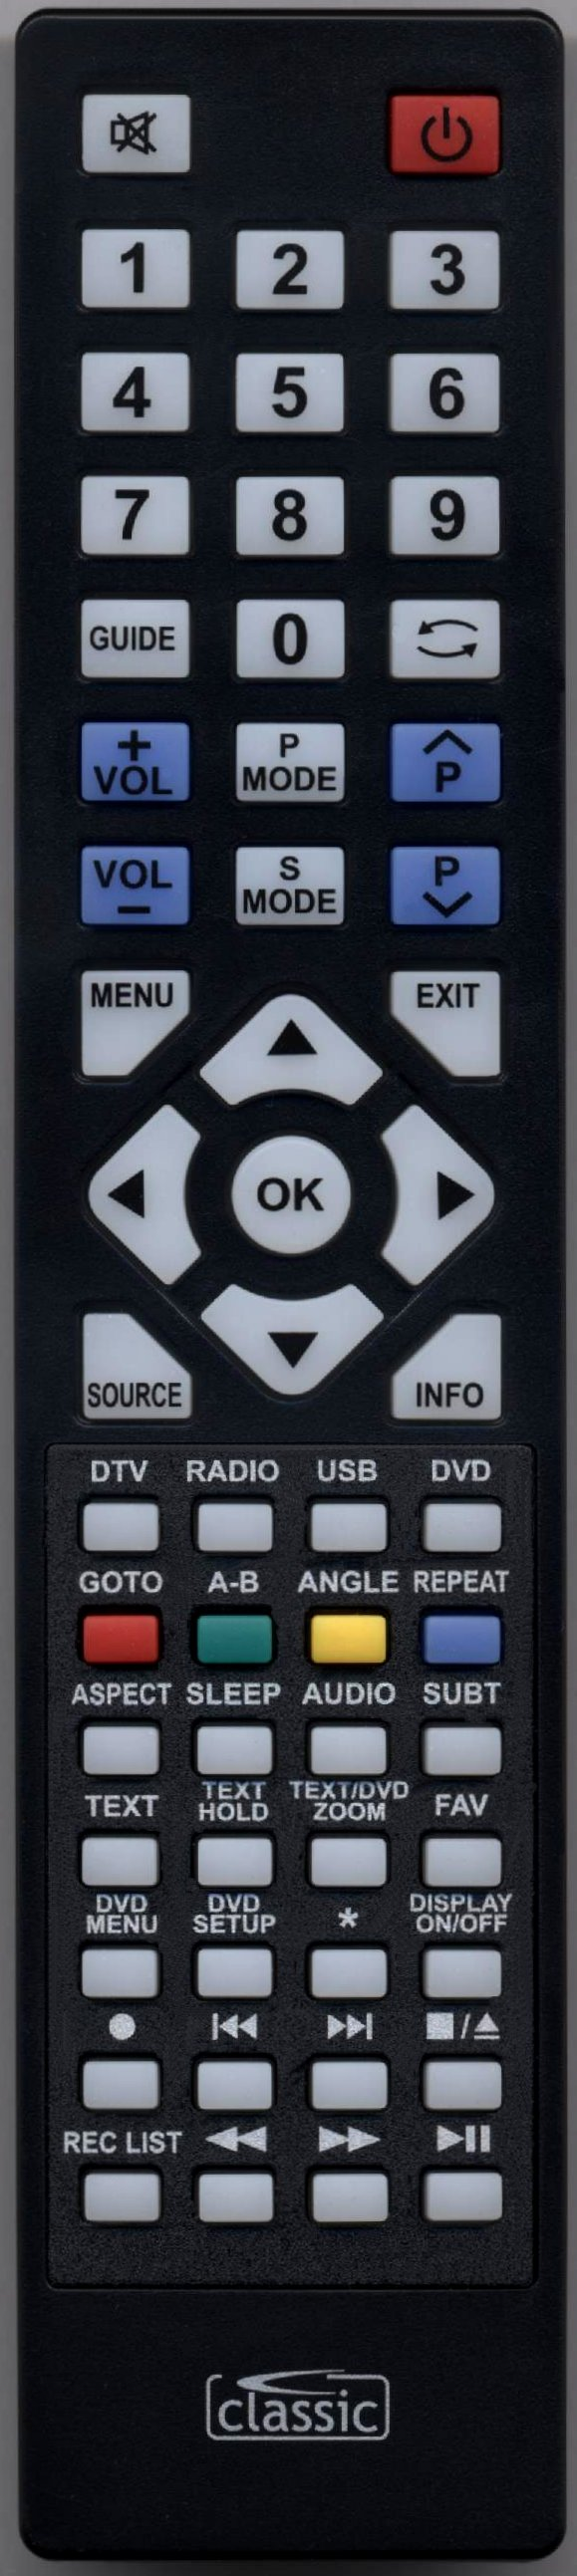 BLAUPUNKT 23/157J-GB-3B-HKDU-UK Remote Control Alternative